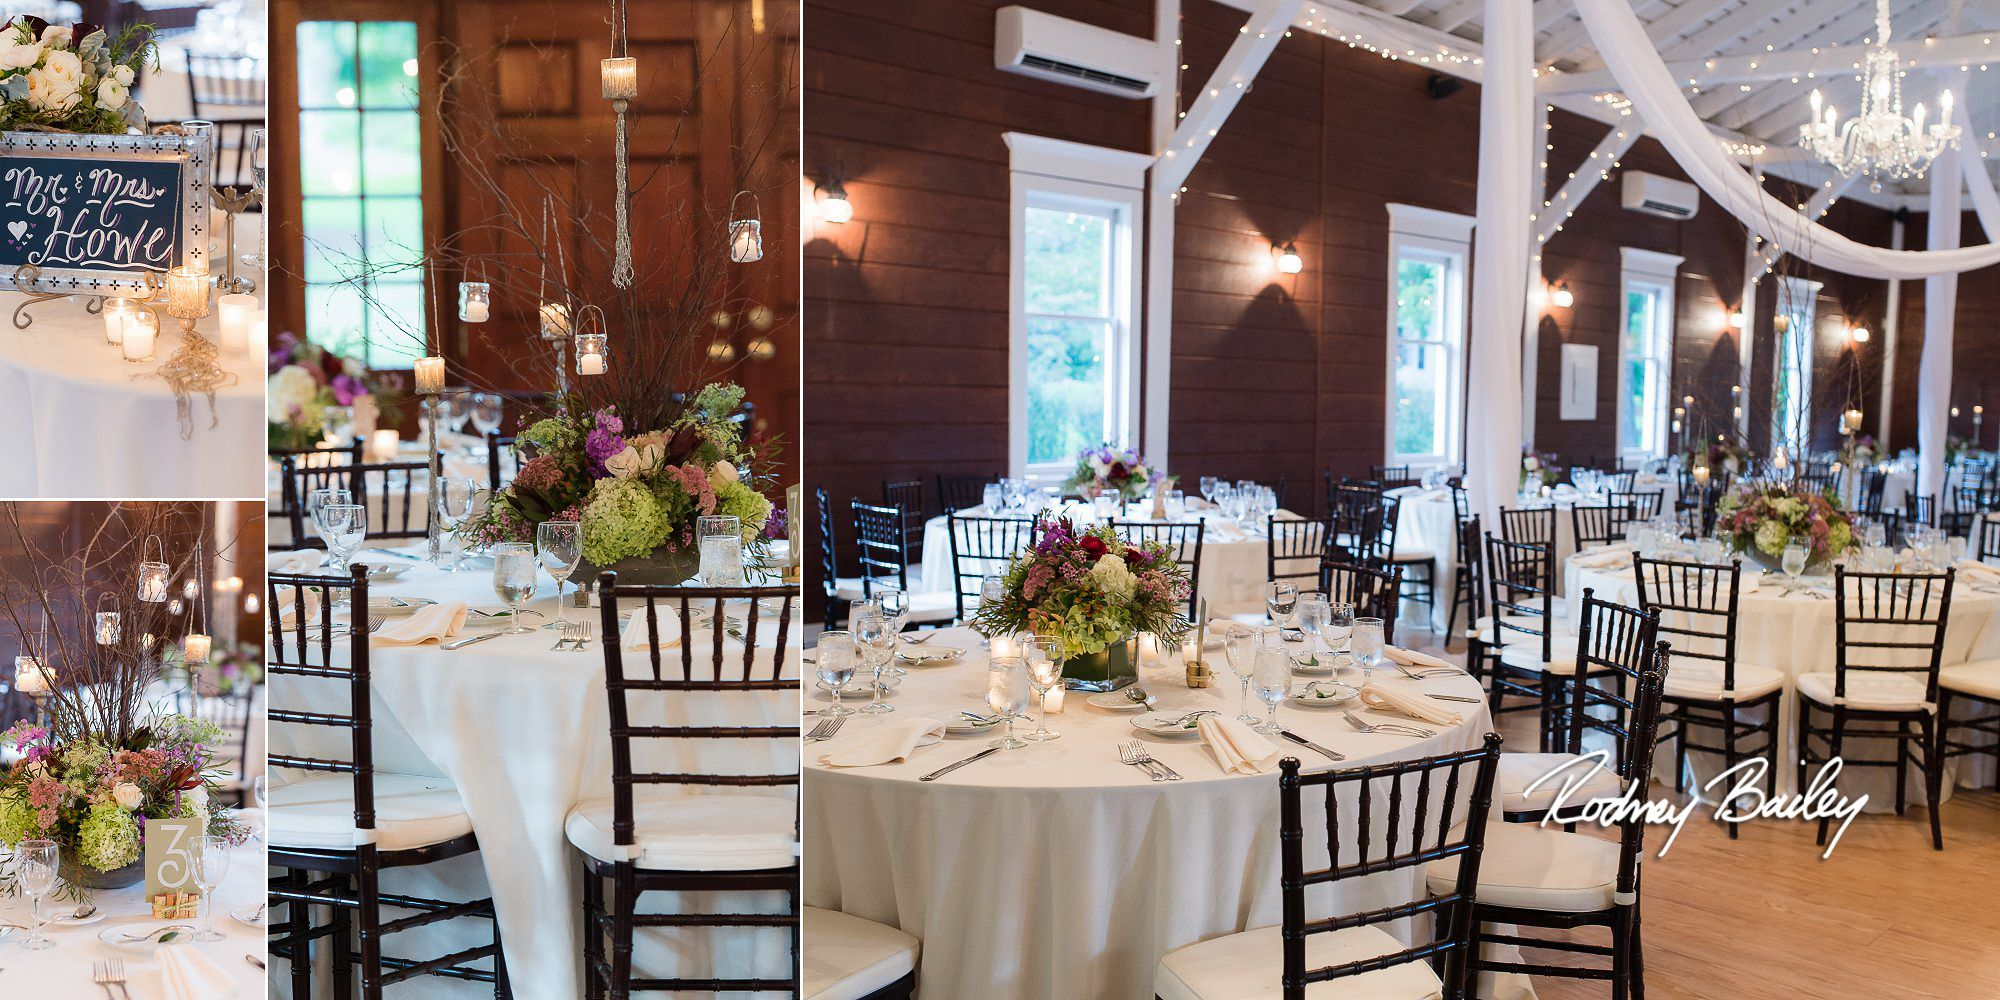 Historic Rosemont Manor Va Weddings Wedding Photographers Venue Reception Ceremony Fls Bridal